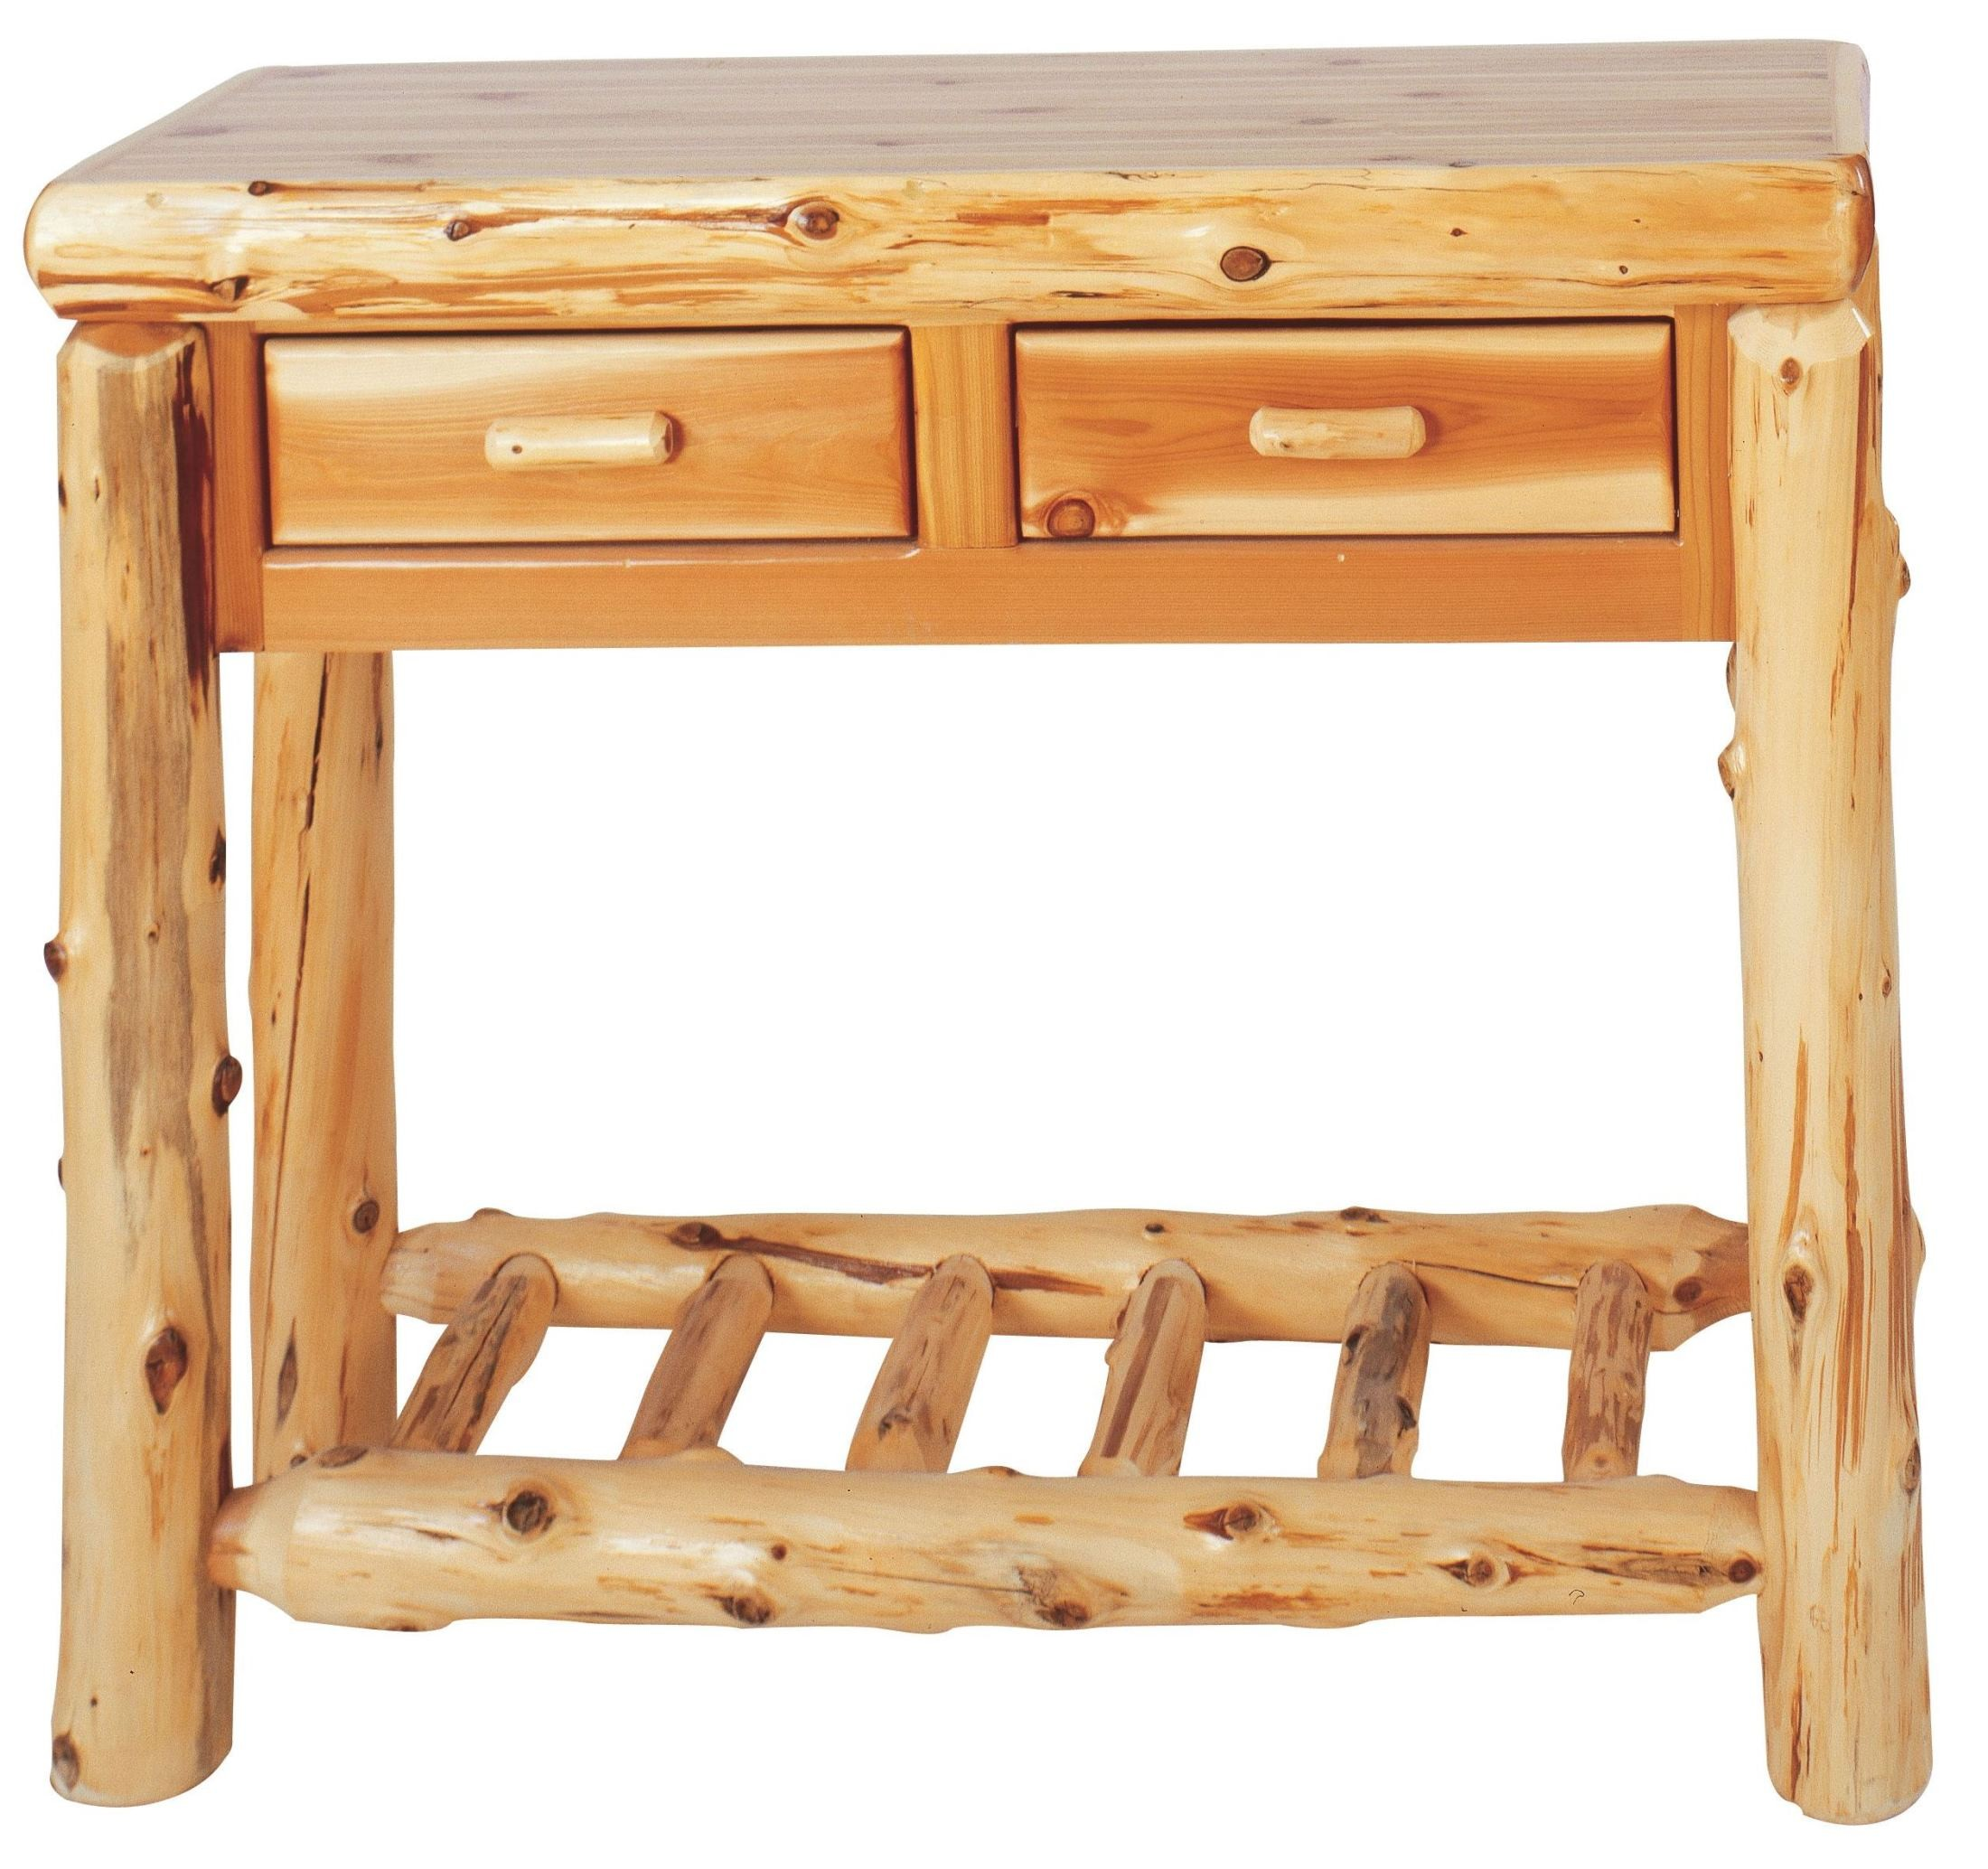 Cedar 2 Drawers Sofa Table from Fireside Lodge 14140  : 14140traditional2drawersofatable from colemanfurniture.com size 2200 x 2068 jpeg 596kB